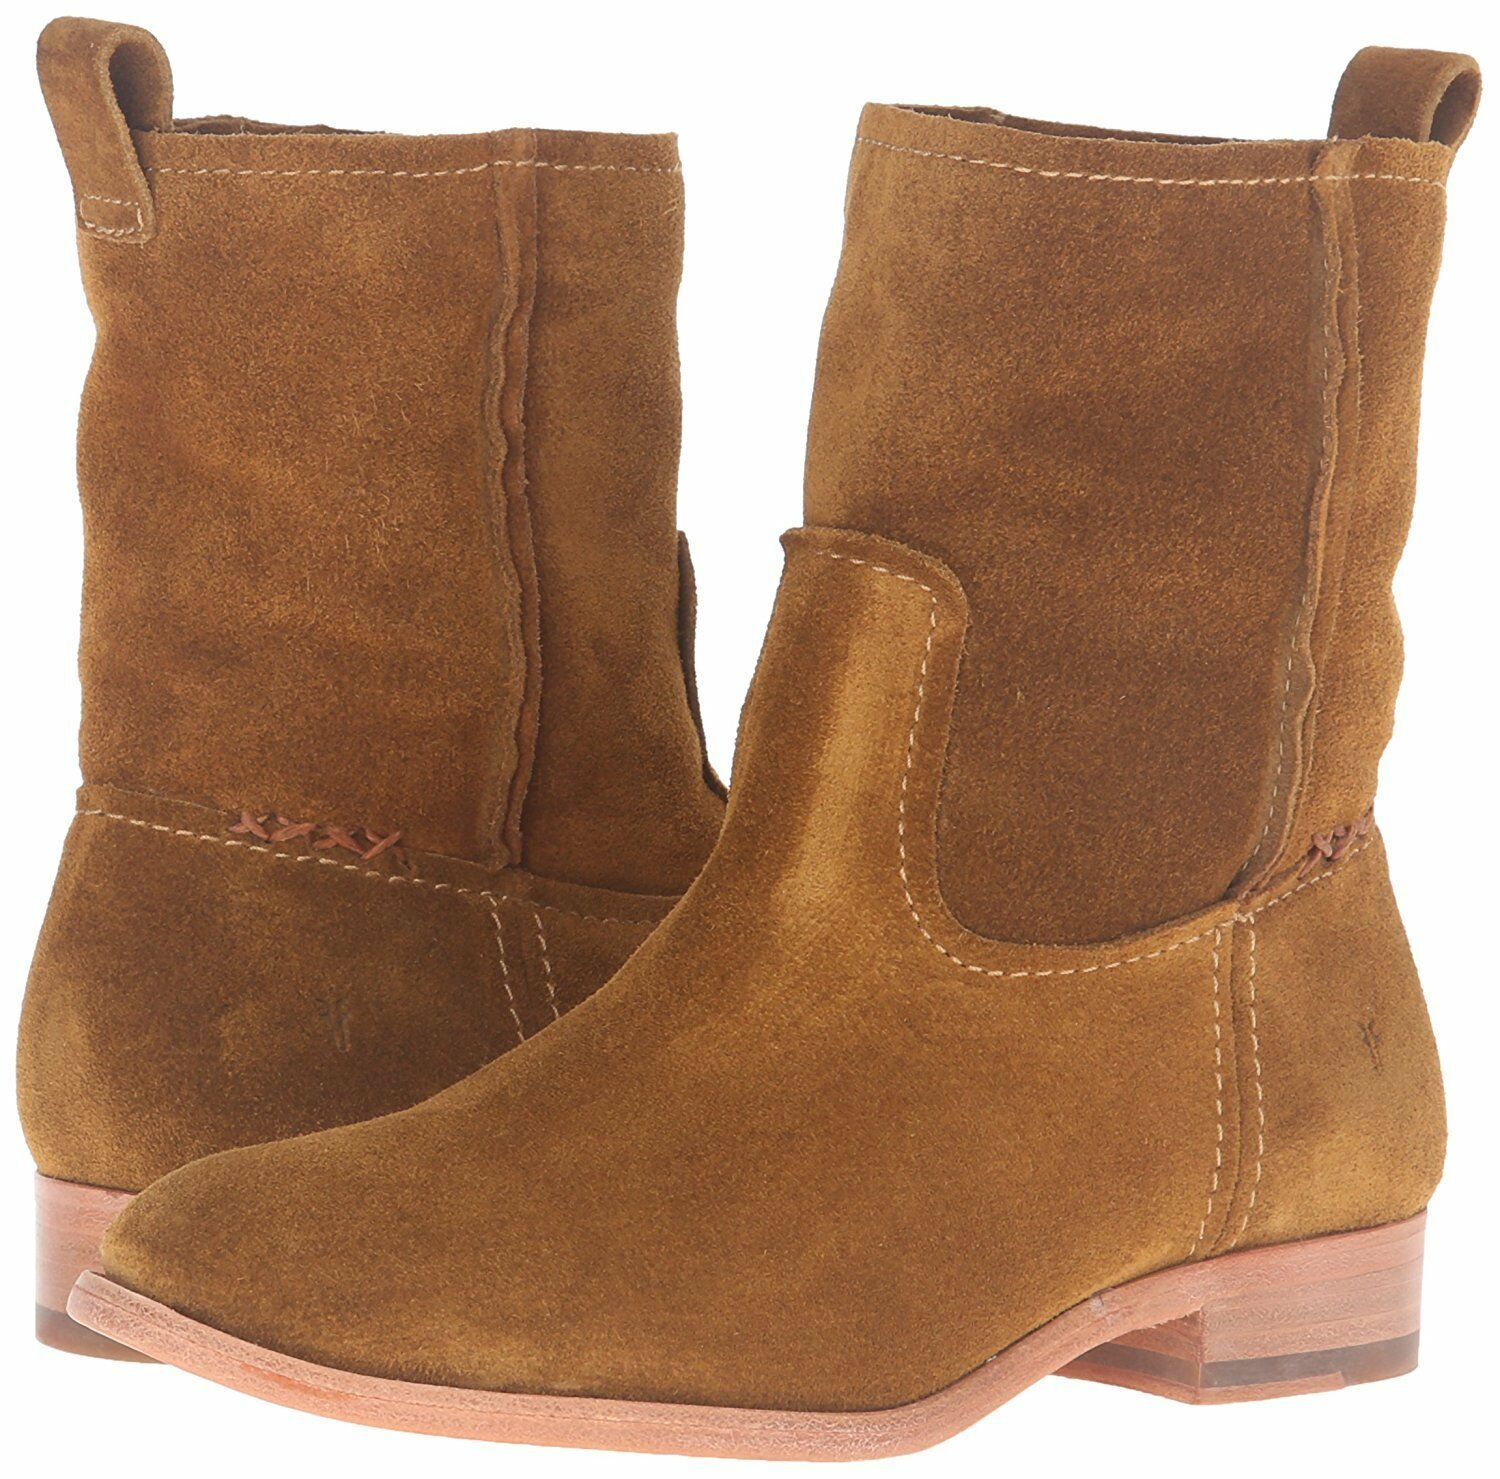 NEW FRYE Women's Wheat Brown Suede Leather Short Cara Boots 3478321-WHE NIB